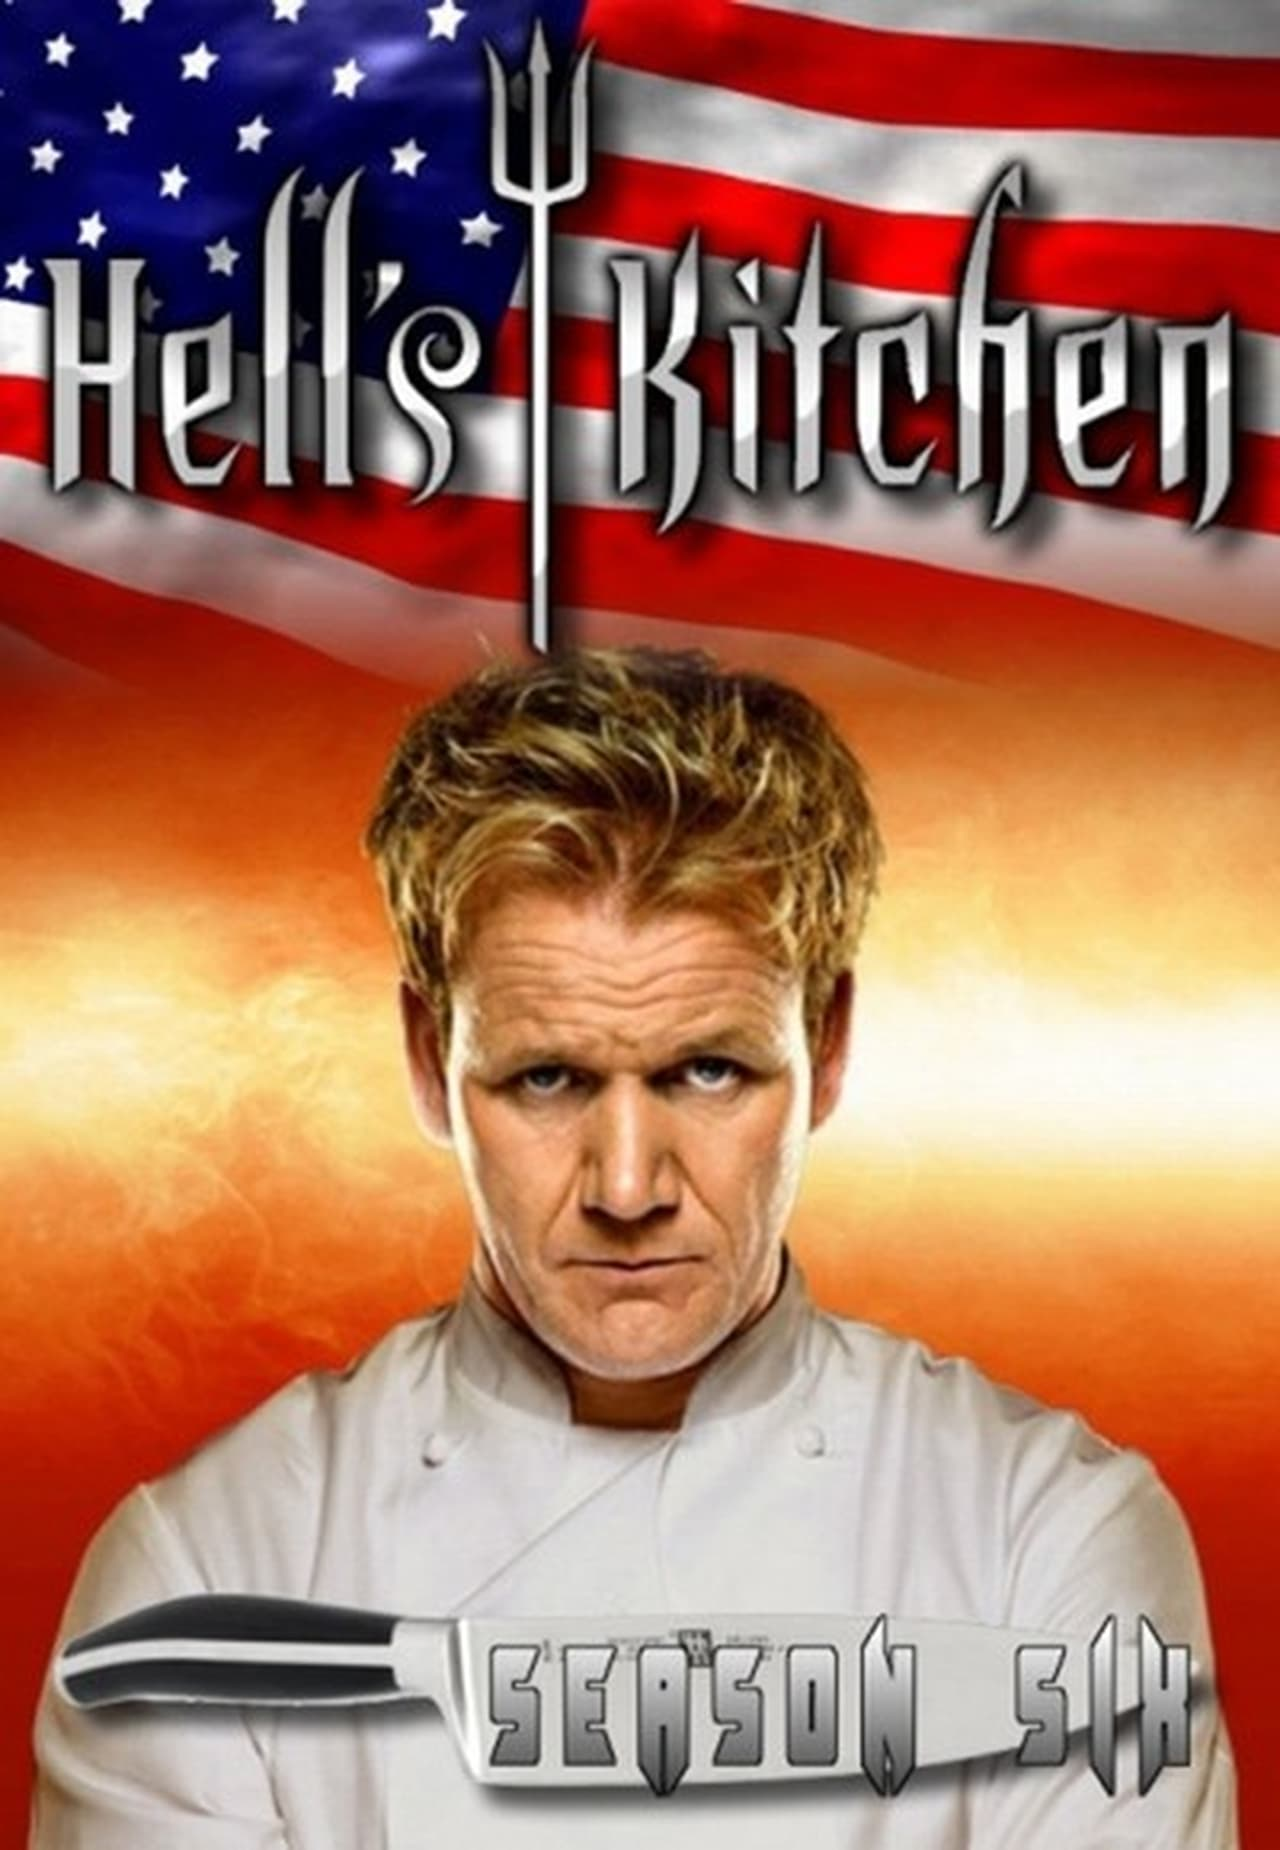 Hell's Kitchen Season 6 (2009) putlockers cafe